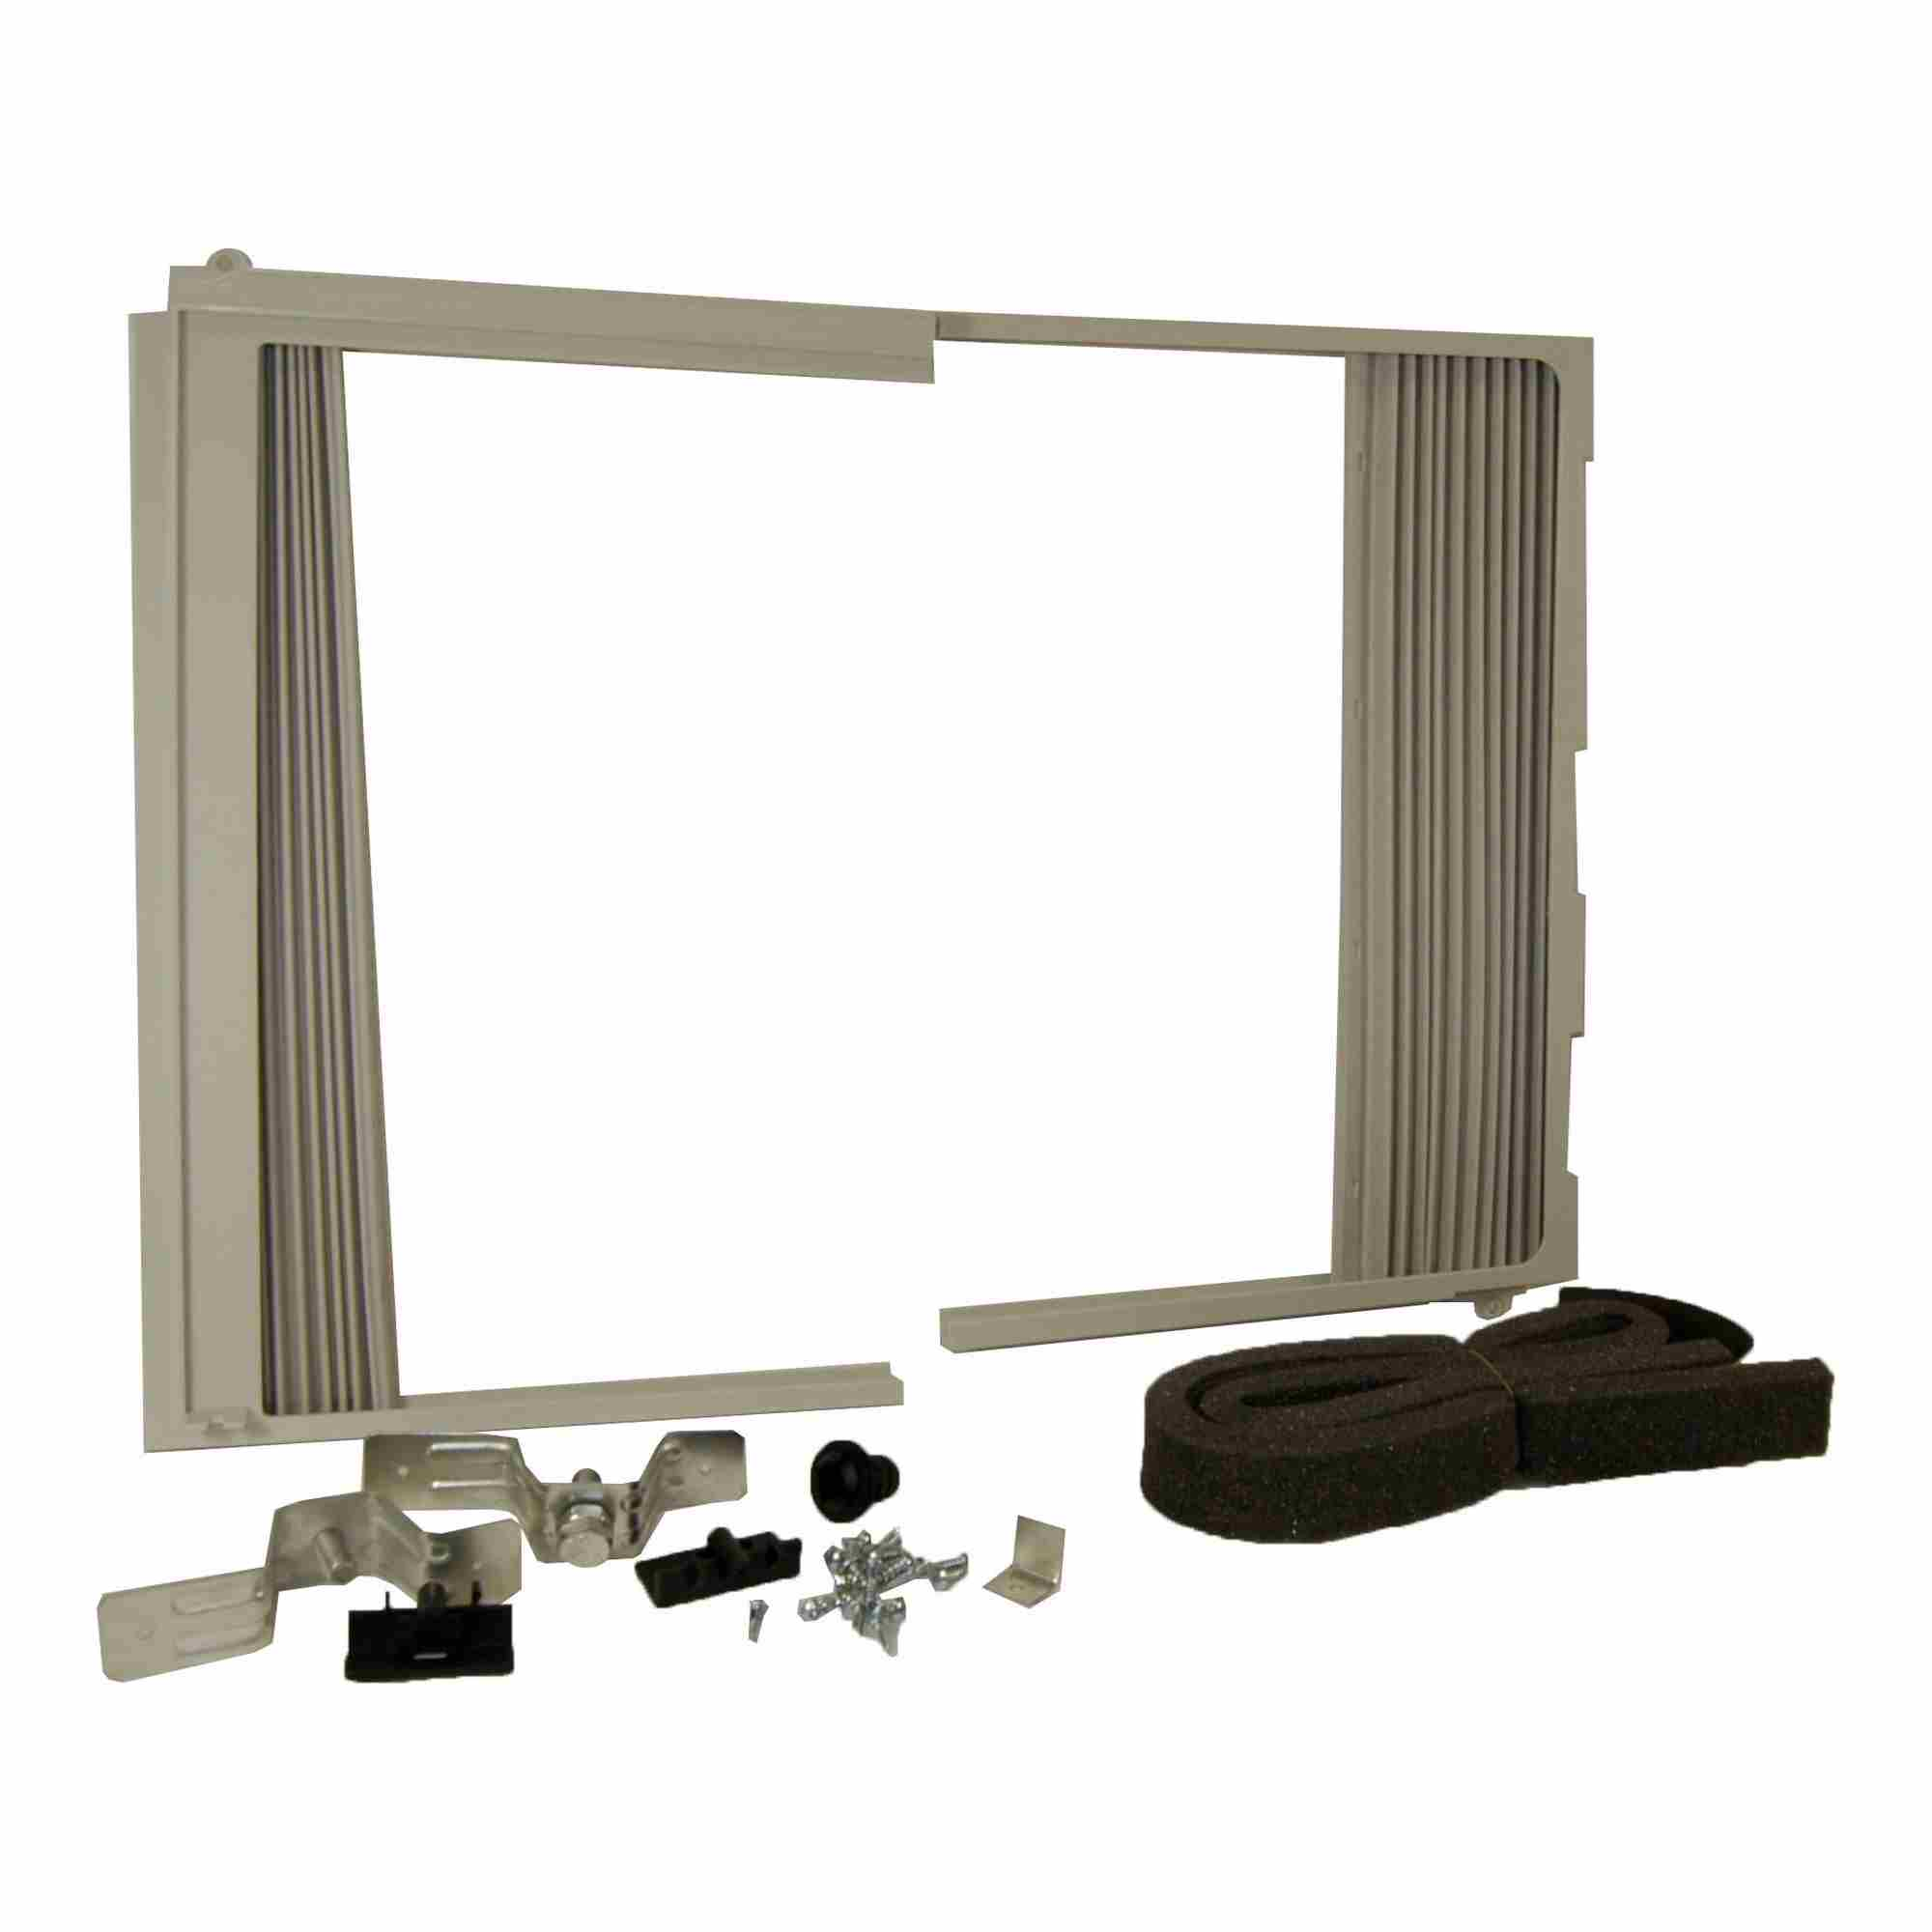 LG 3127A20074D Air Conditioner Window Side Curtain